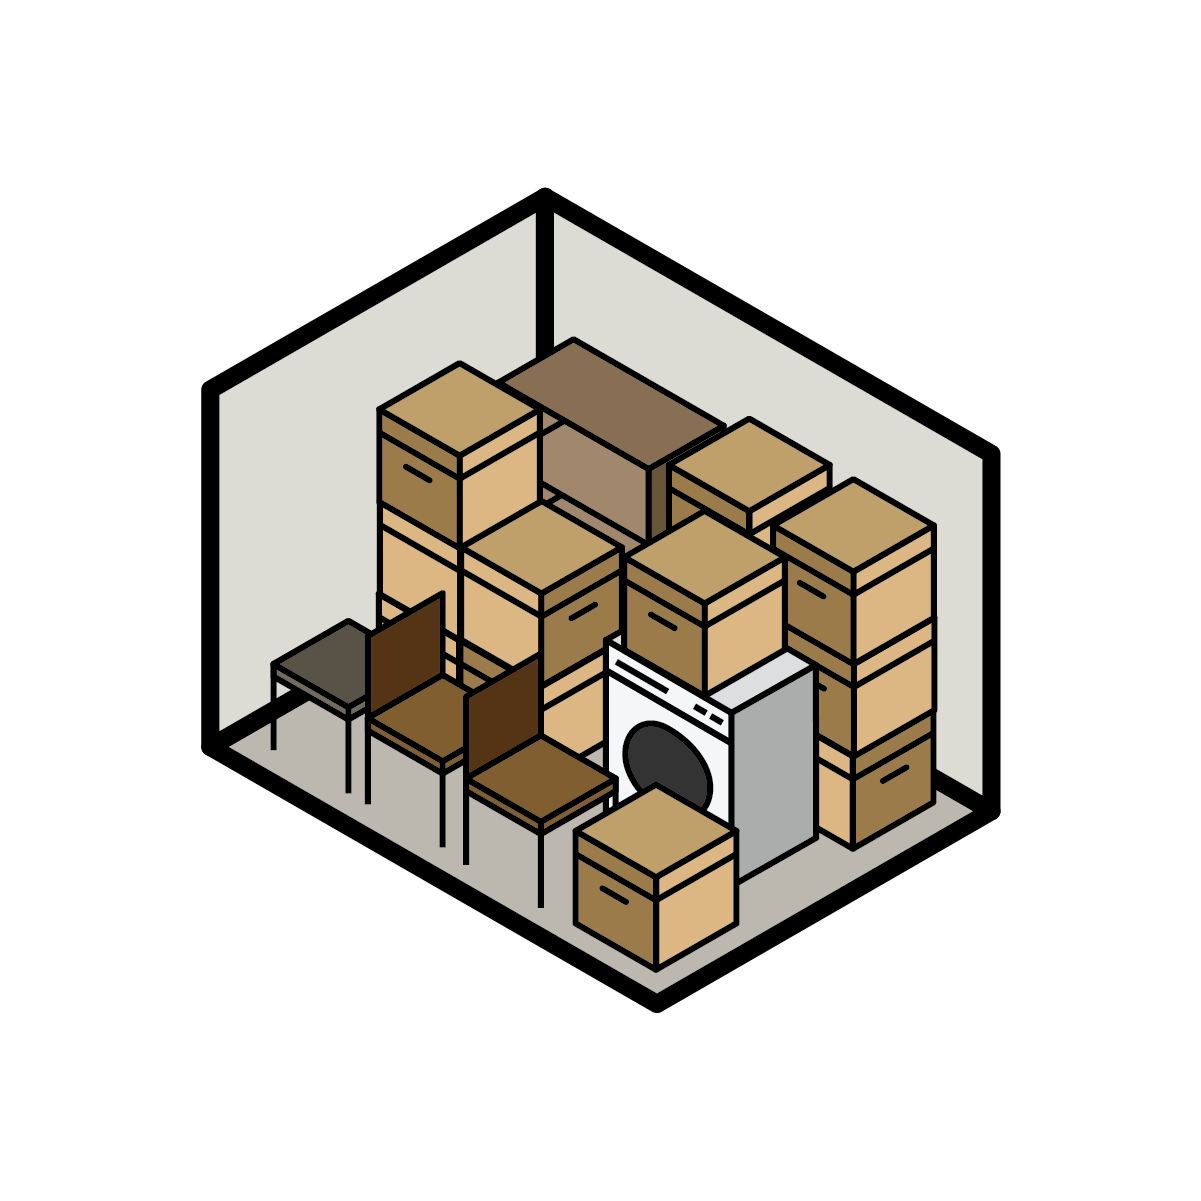 01_grofire_storage_units_sizinggraphics_7.5×10